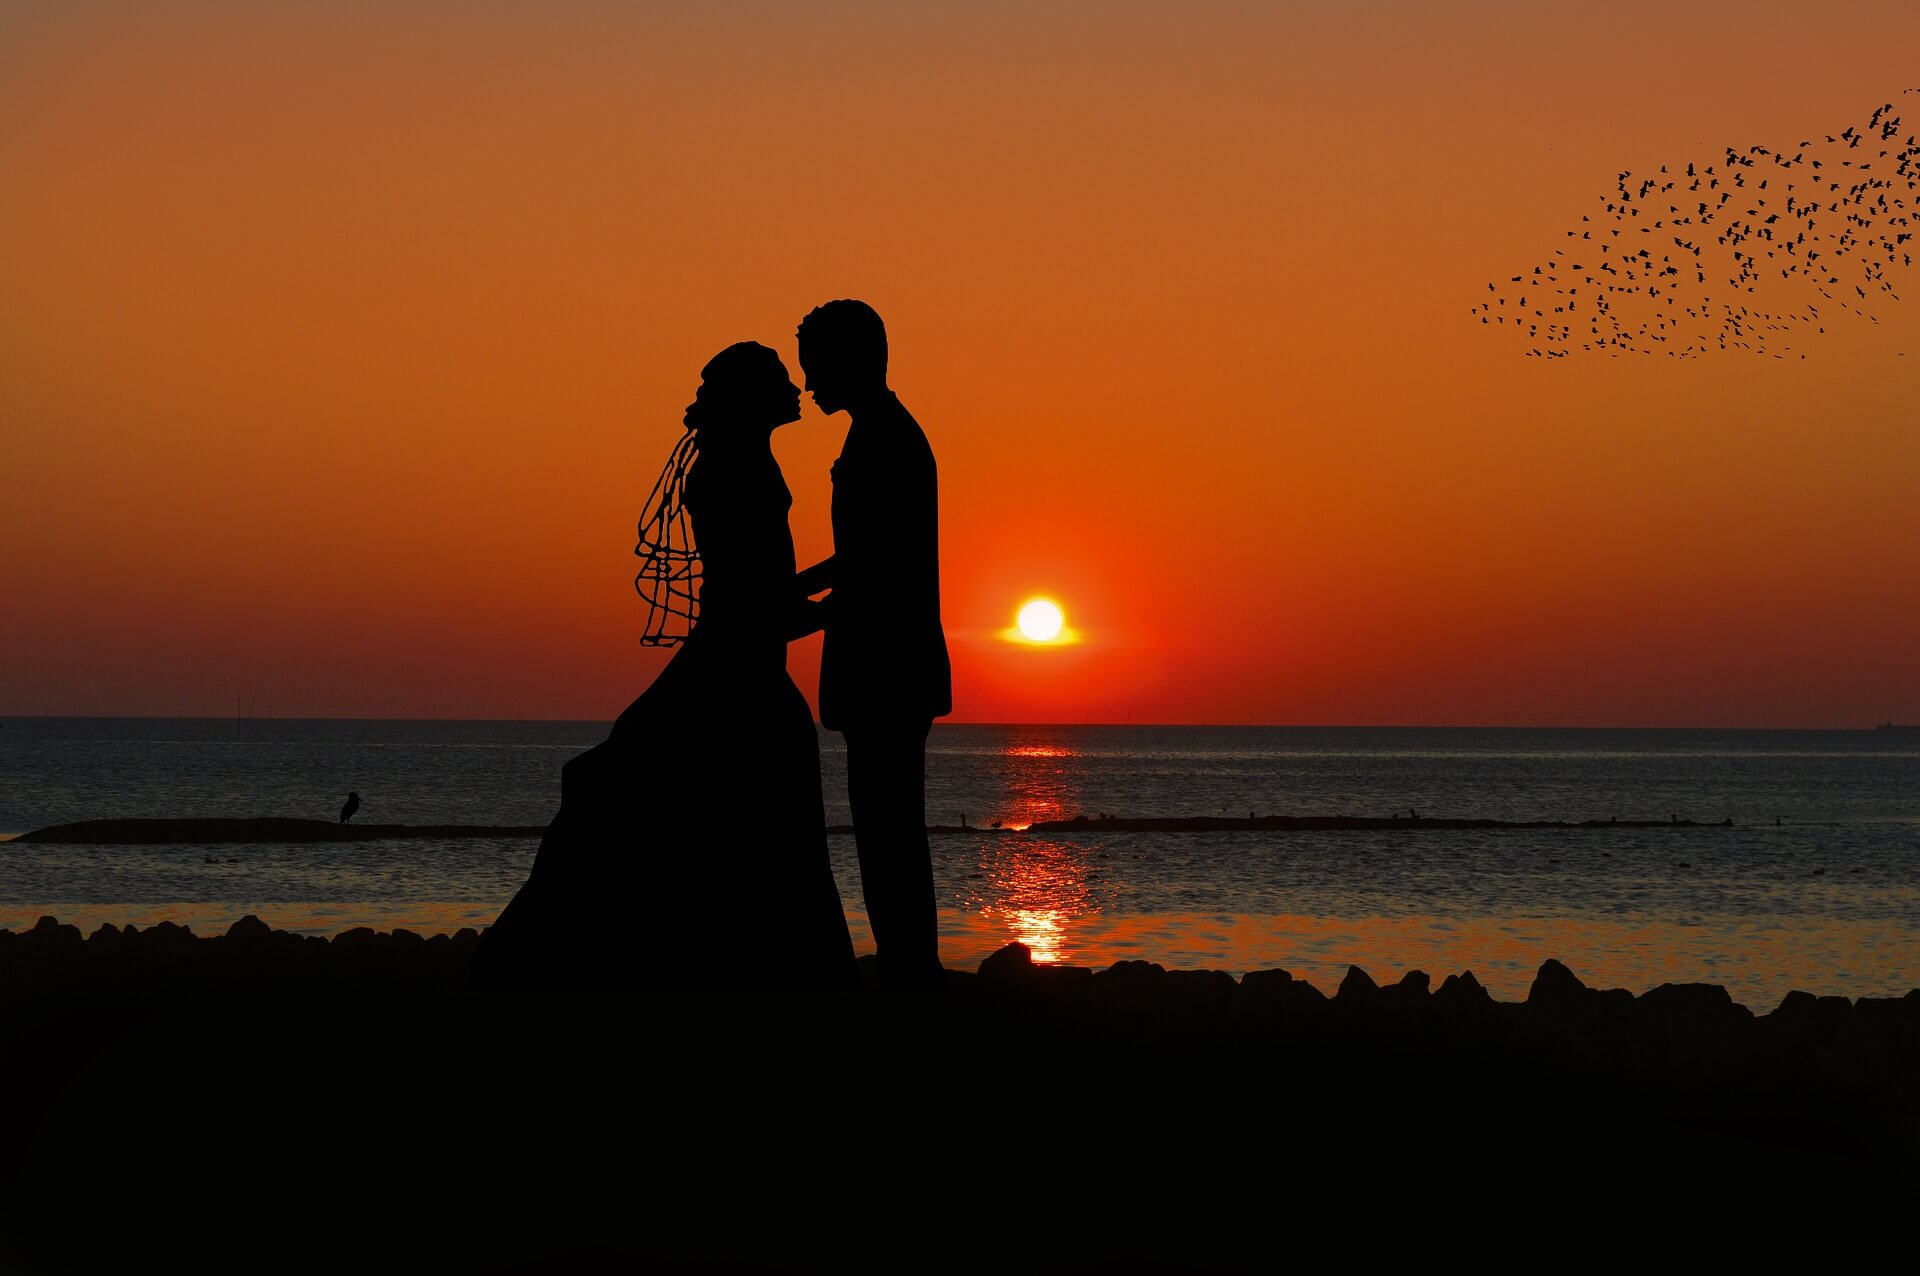 A silhouette of a bride and groom holding hands at sunset